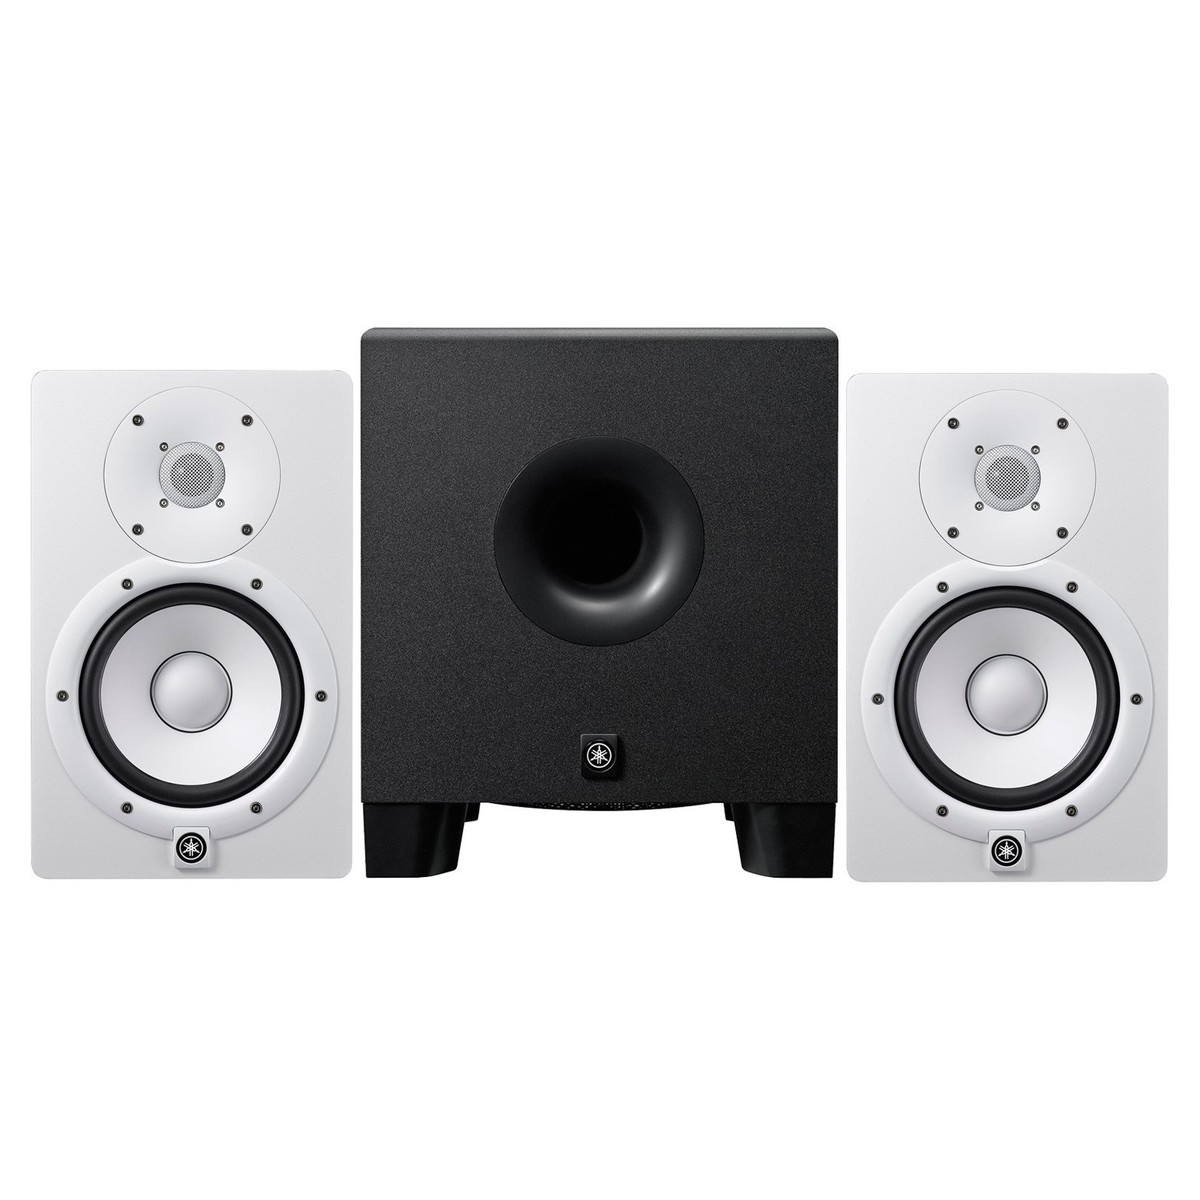 yamaha hs7 active studio monitors white with hs8 powered subwoofer at gear4music. Black Bedroom Furniture Sets. Home Design Ideas